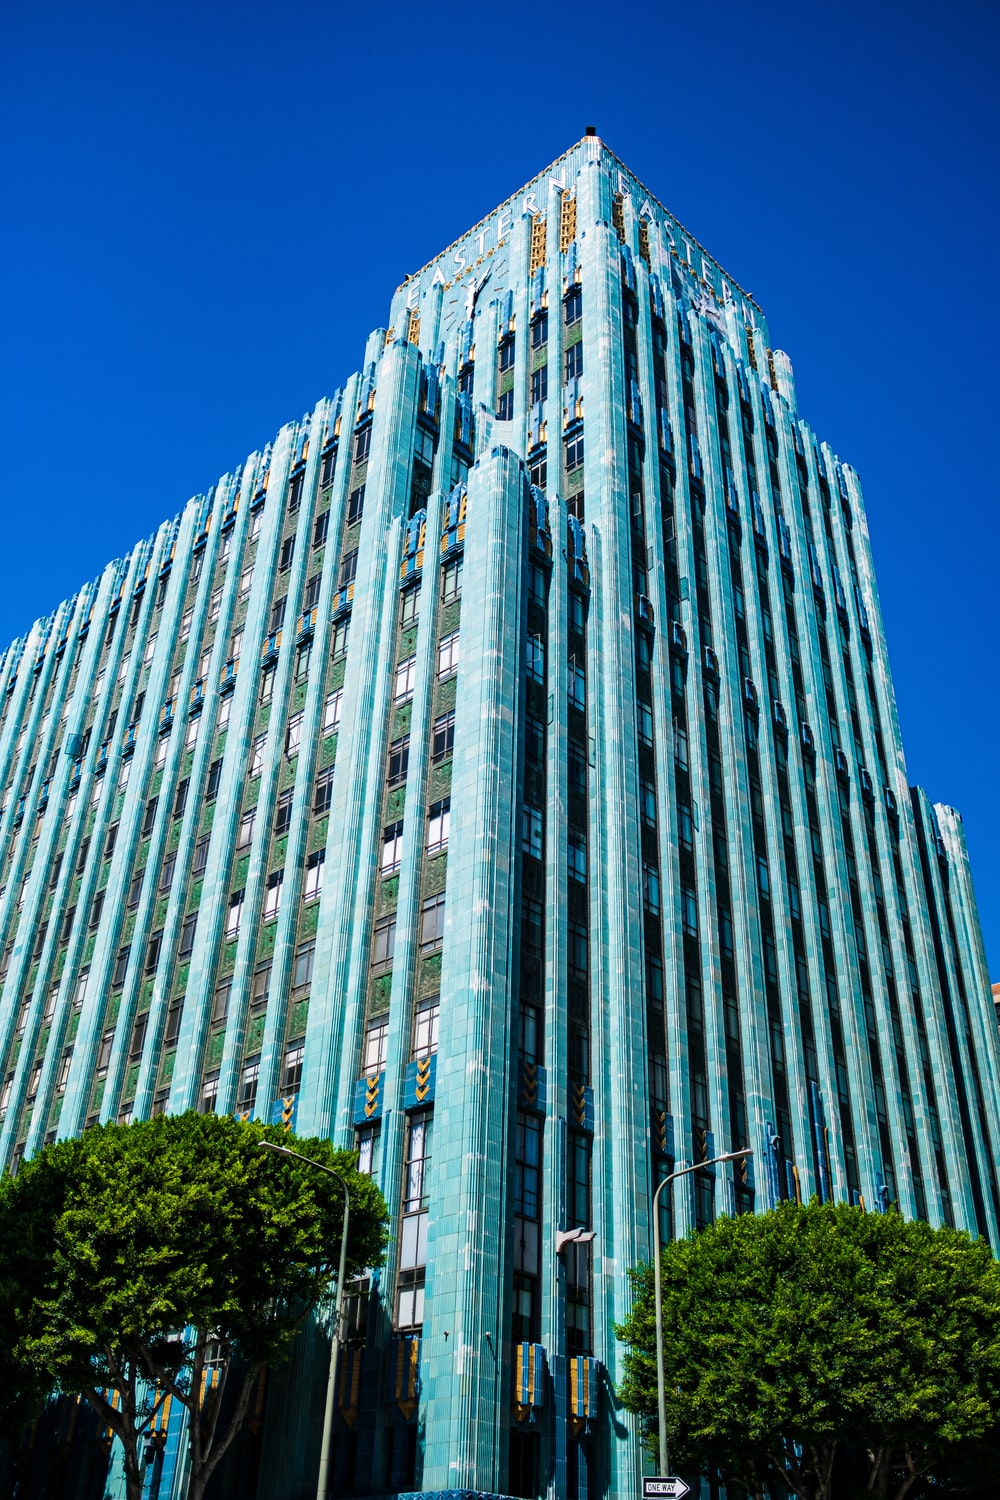 low angle photography of gray concrete mid-rise building during daytime